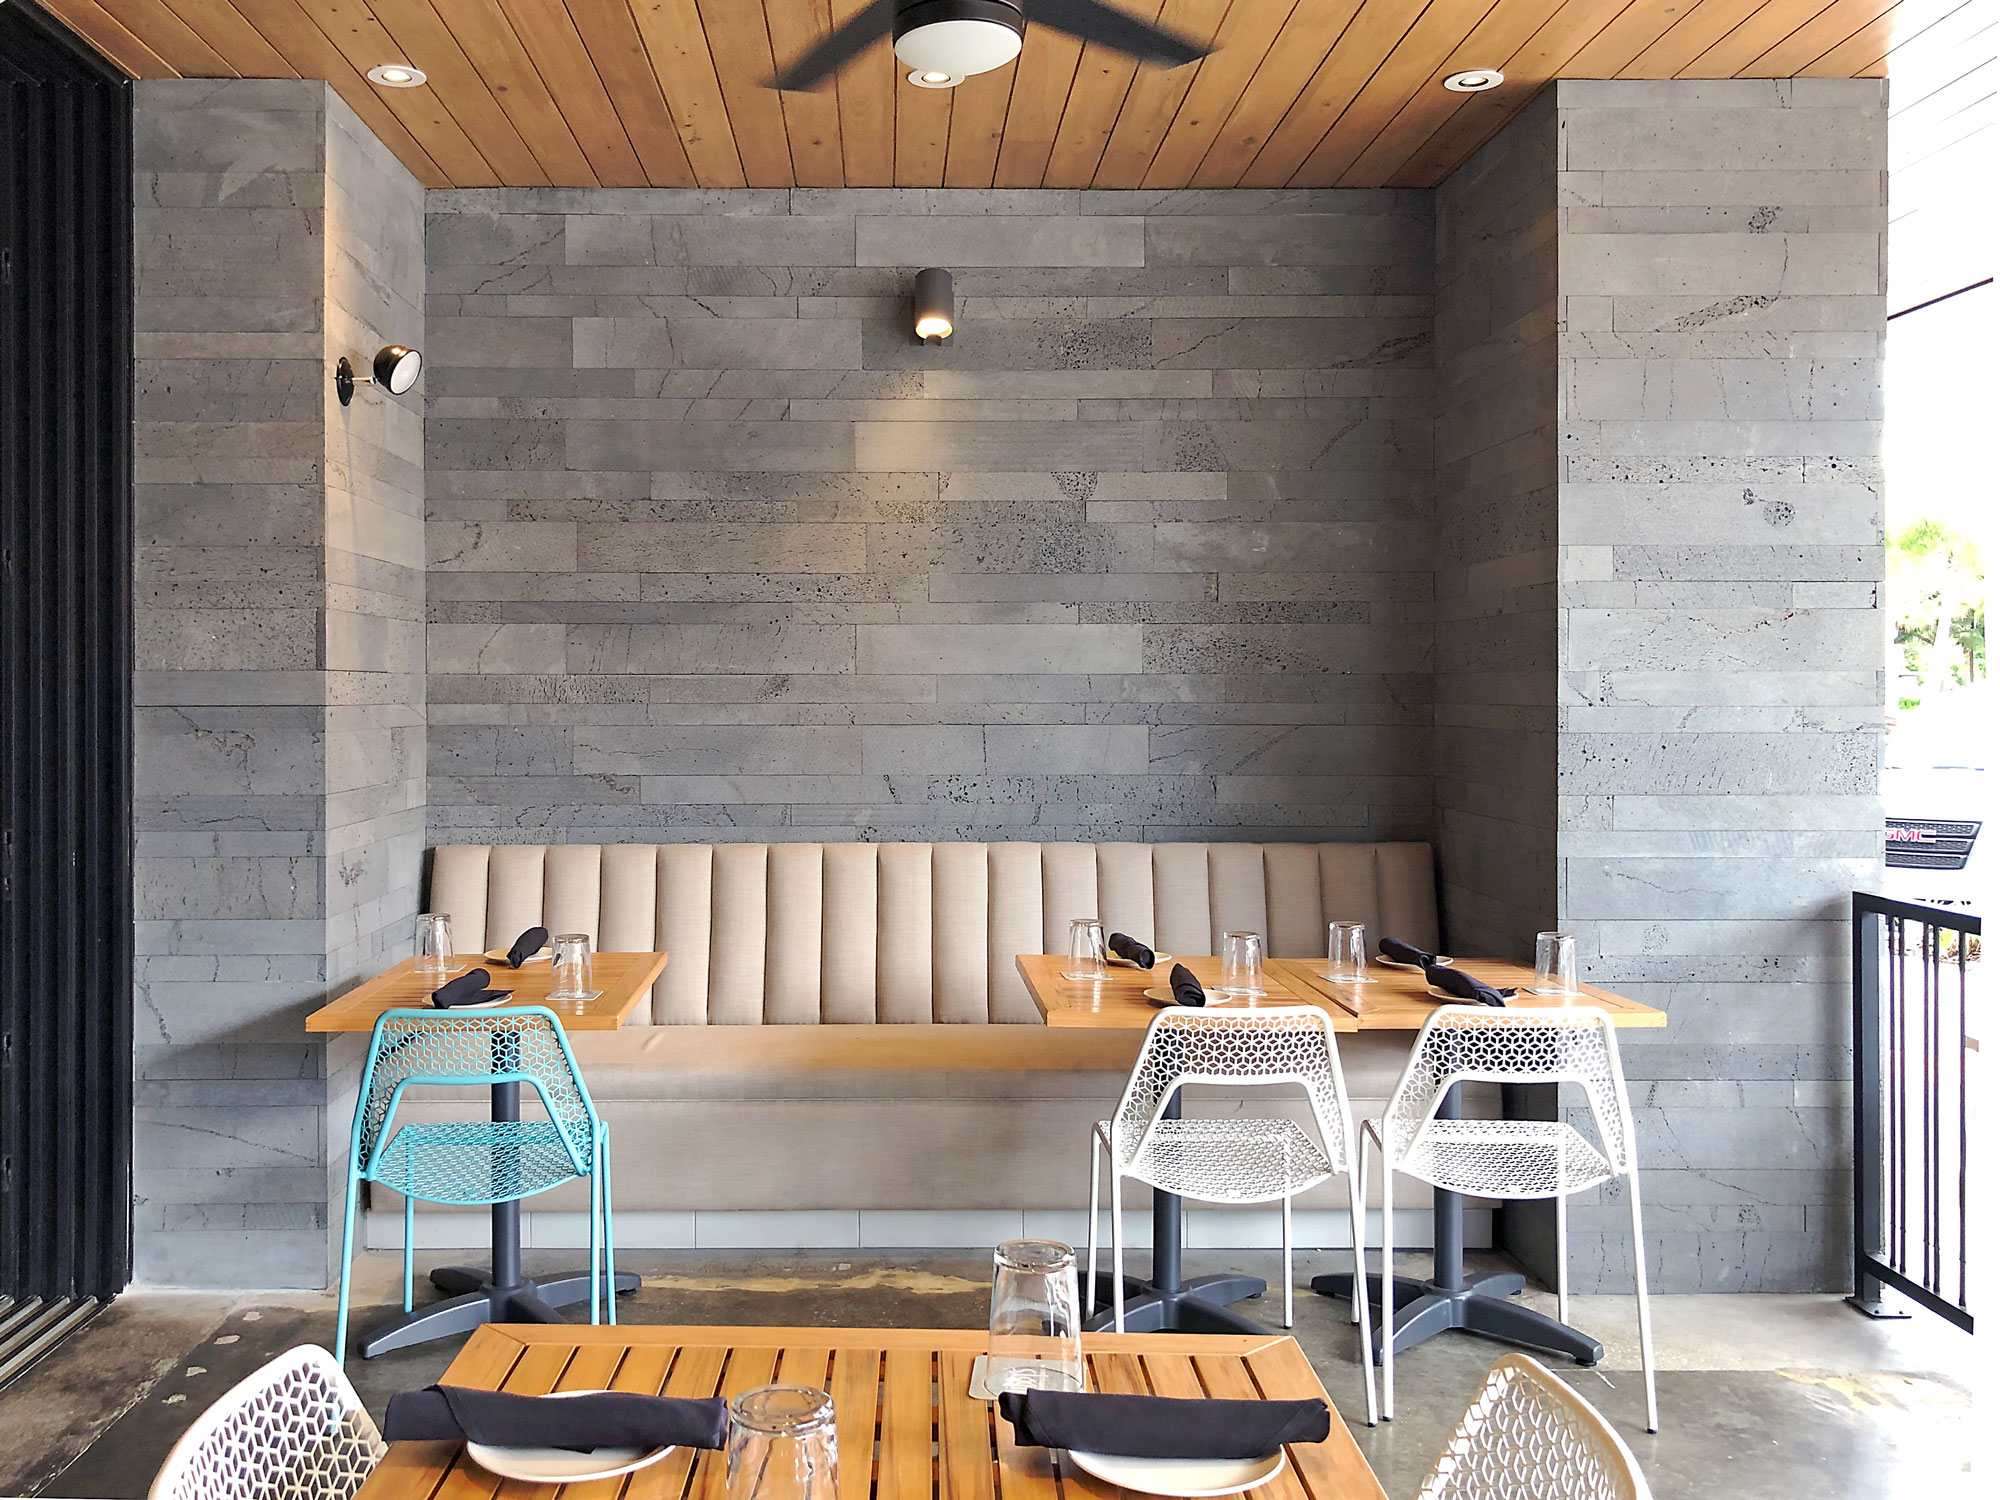 Norstone Platinum Planc Large Format Wall Tile featured in the outside dining area of Libby's restaurant in Sarasota, FL